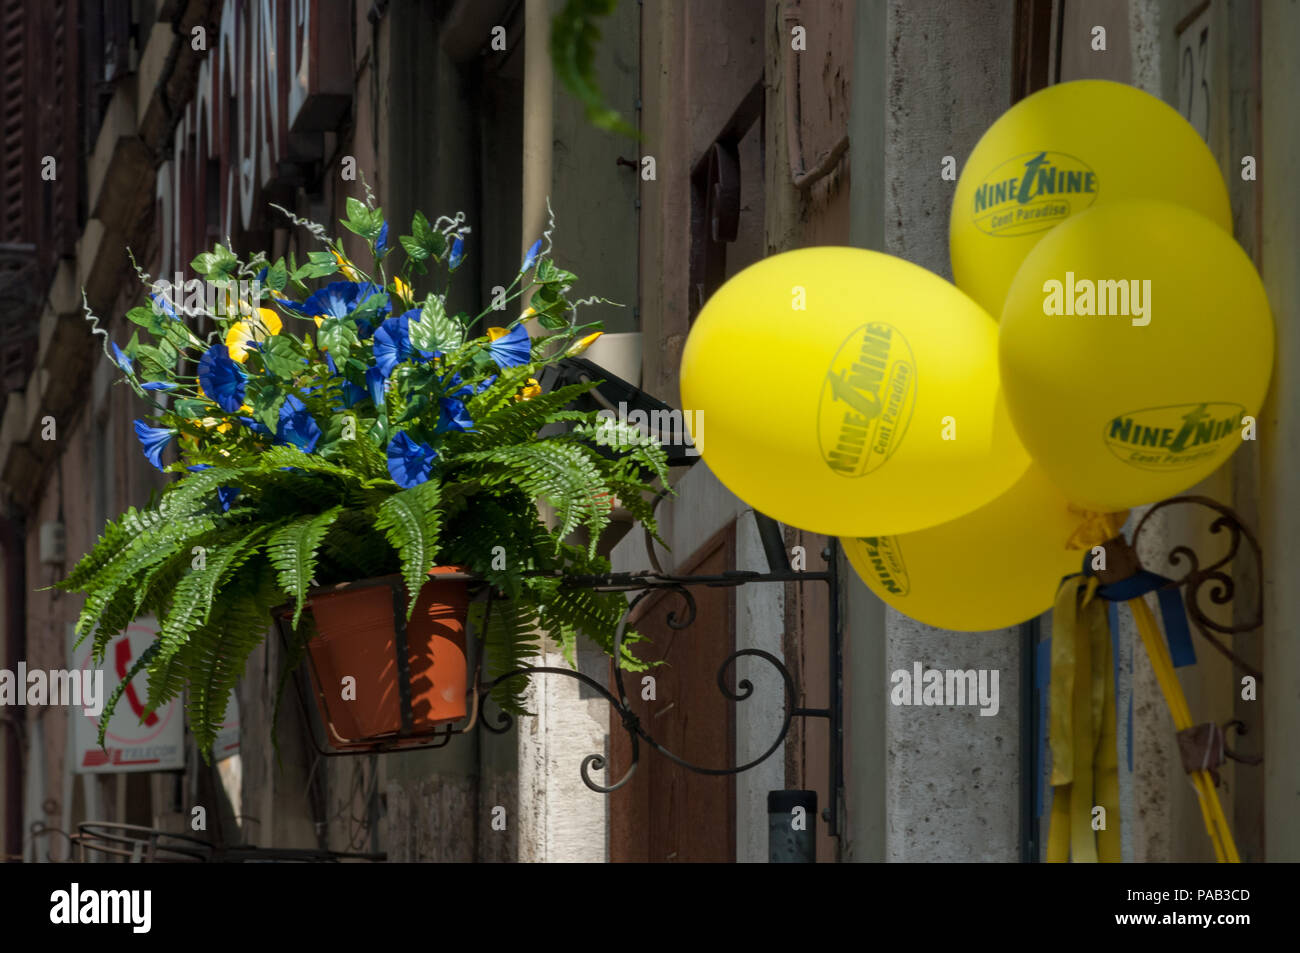 Colourful decoration outside a shop in Rome Stock Photo: 212915149 on